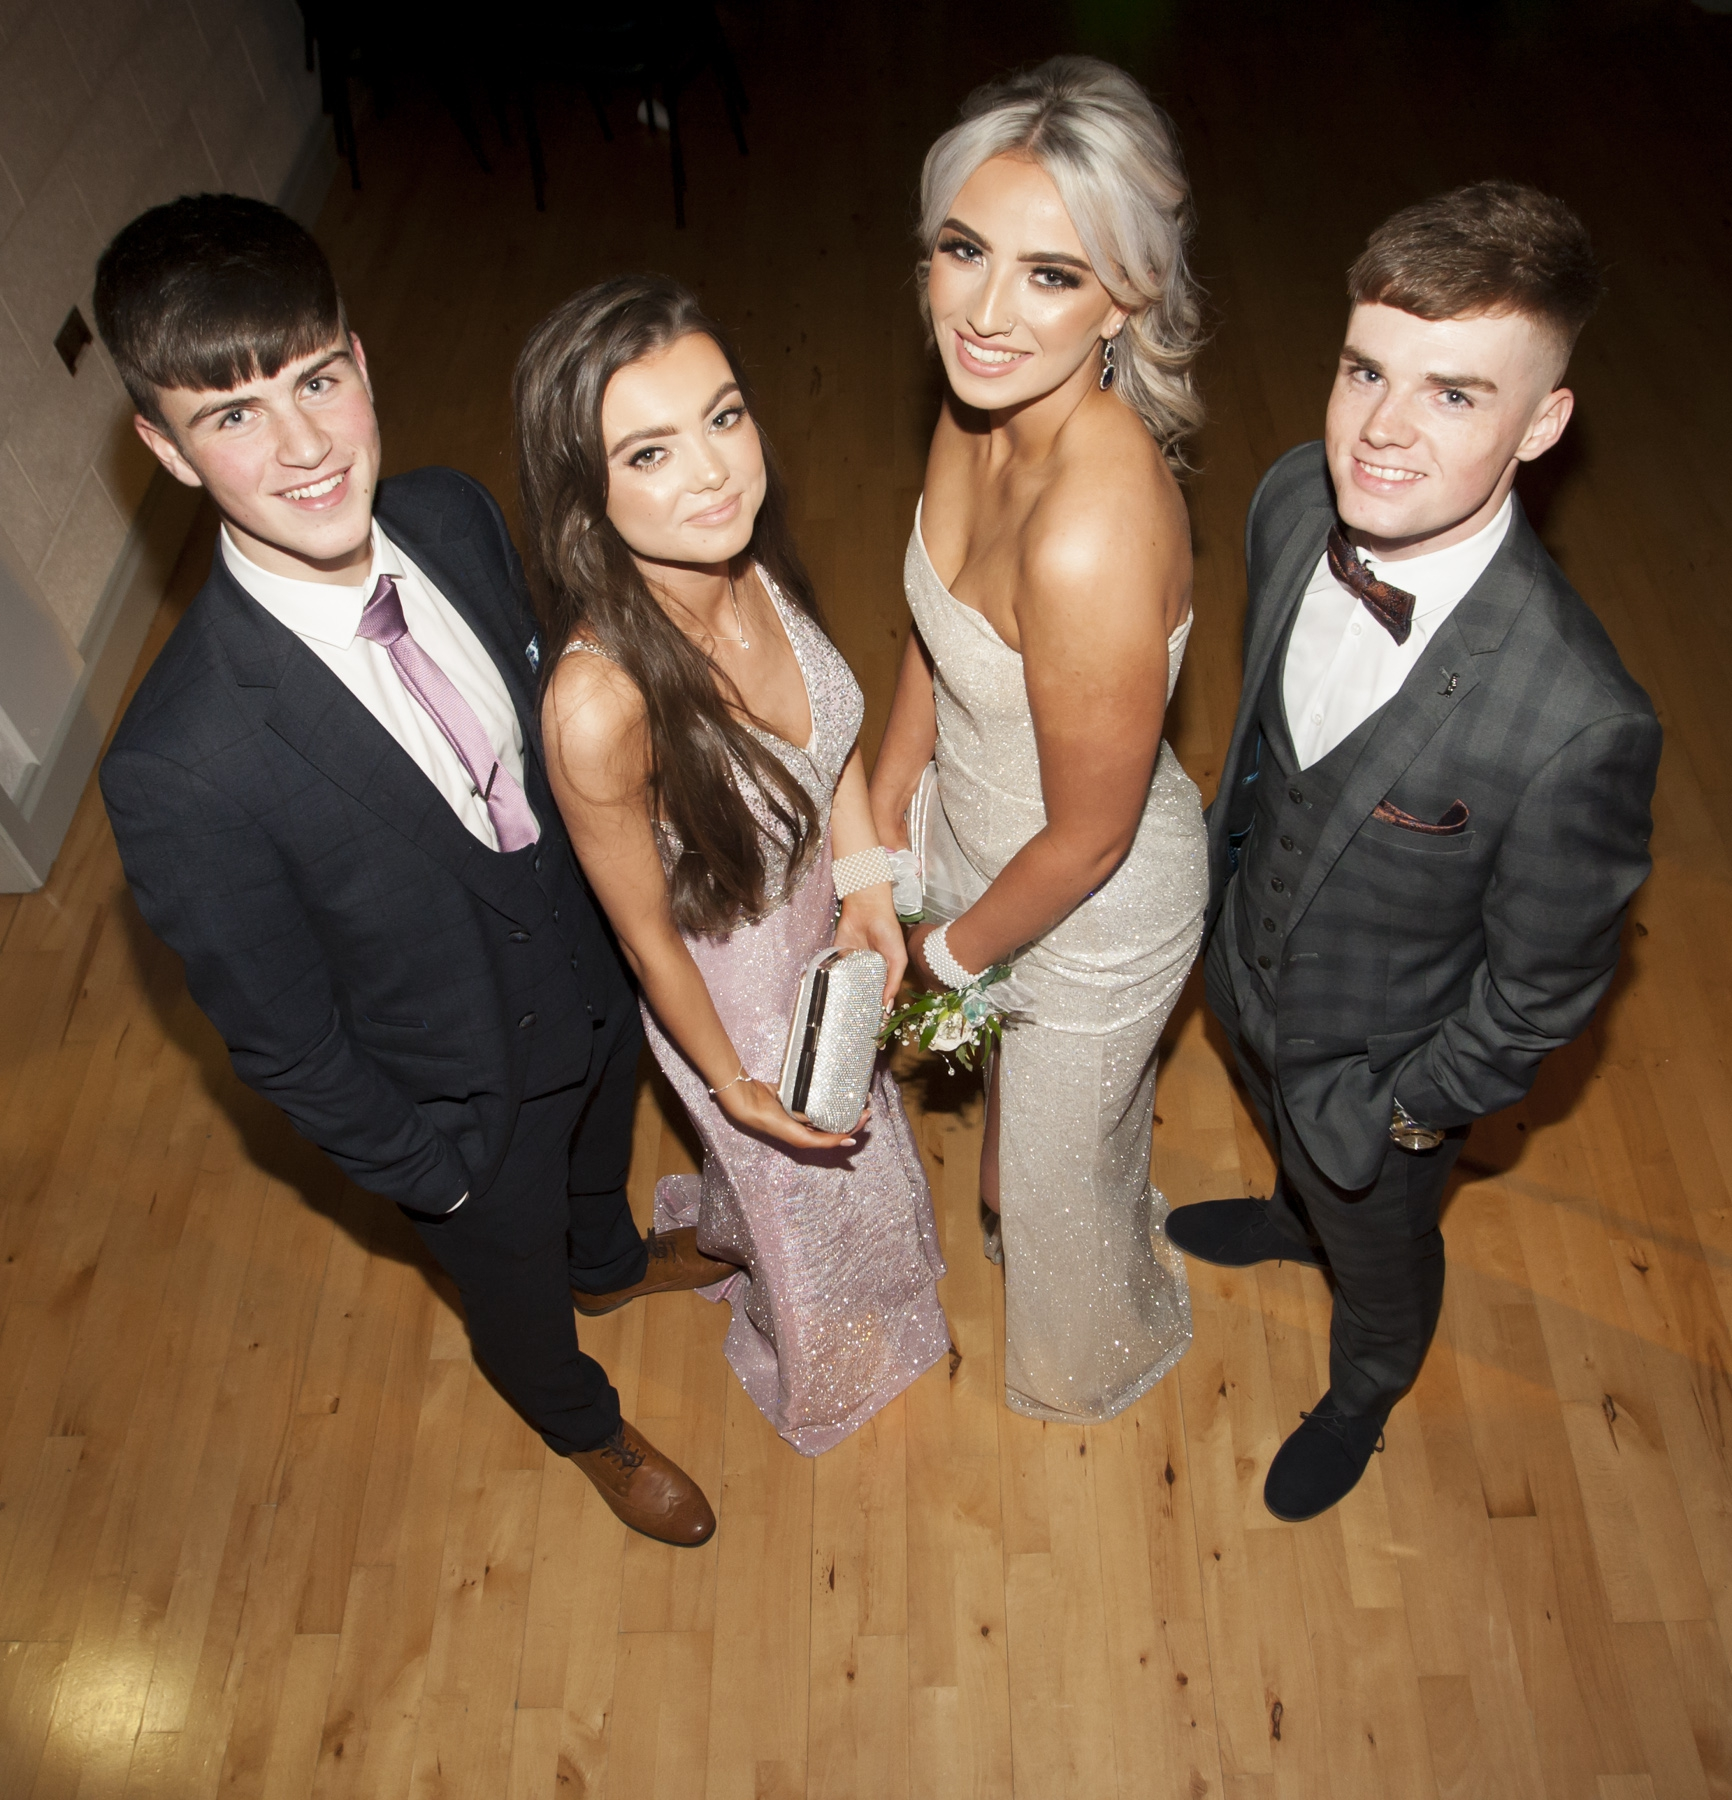 Group pictured at the St. Mary's College Annual Formal on Thursday night last. From left Aidan Cutliffe, Anna Finnis, Hannah Long and Ciaran Barr.